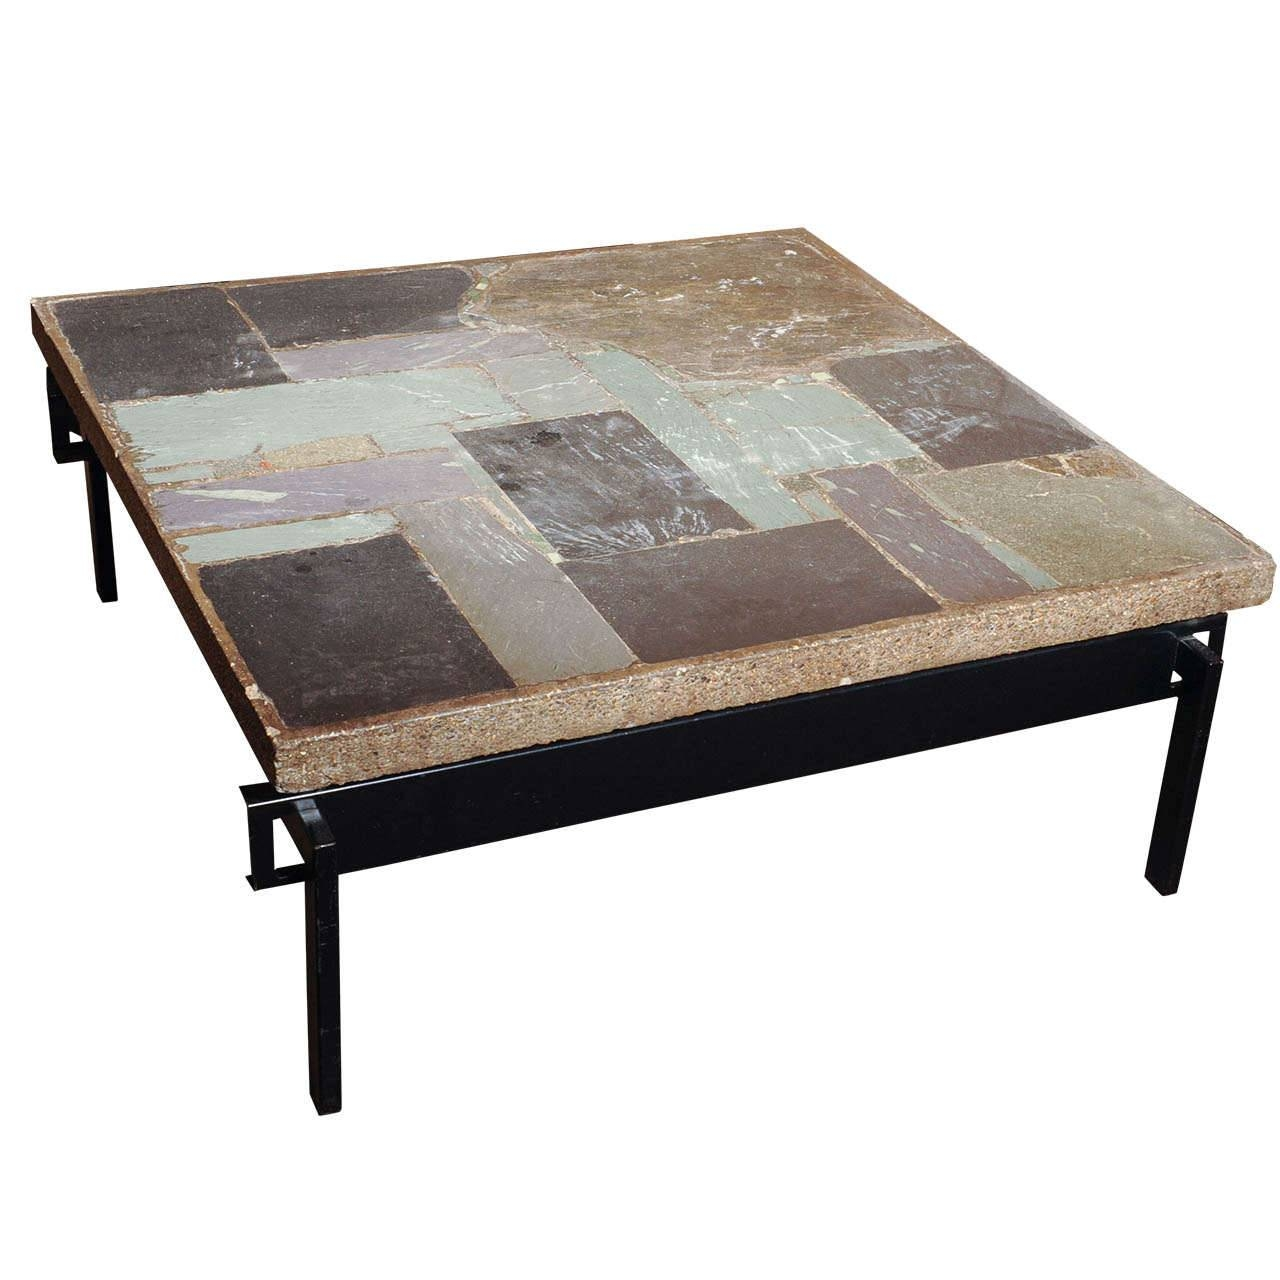 2018 Best of Square Stone Coffee Tables